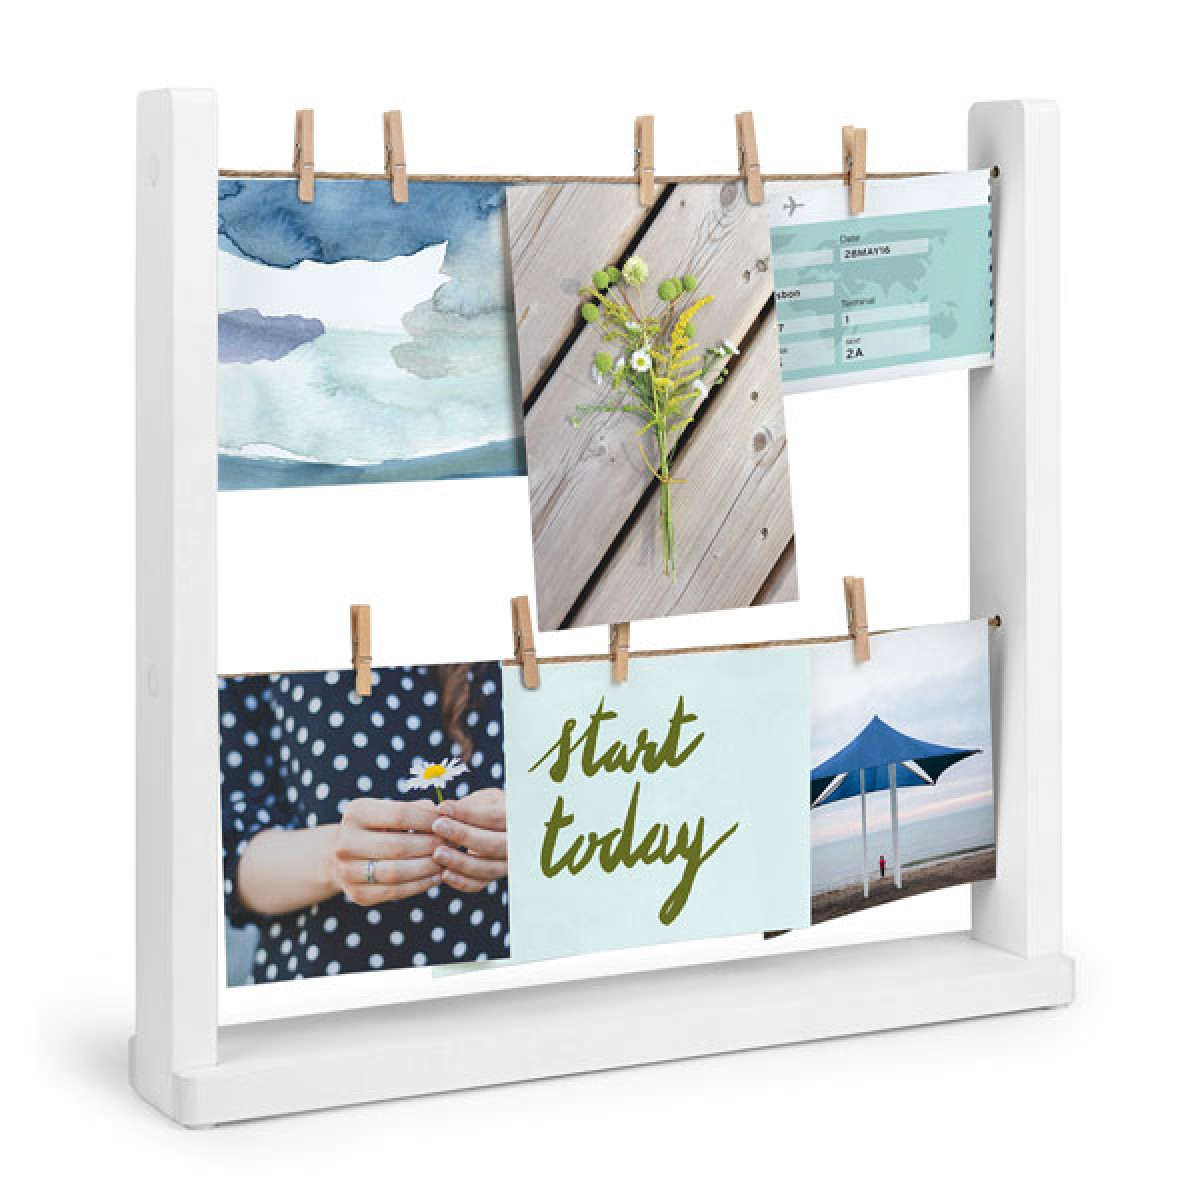 umbra hangit desk photo display clothesline desktop photo frame